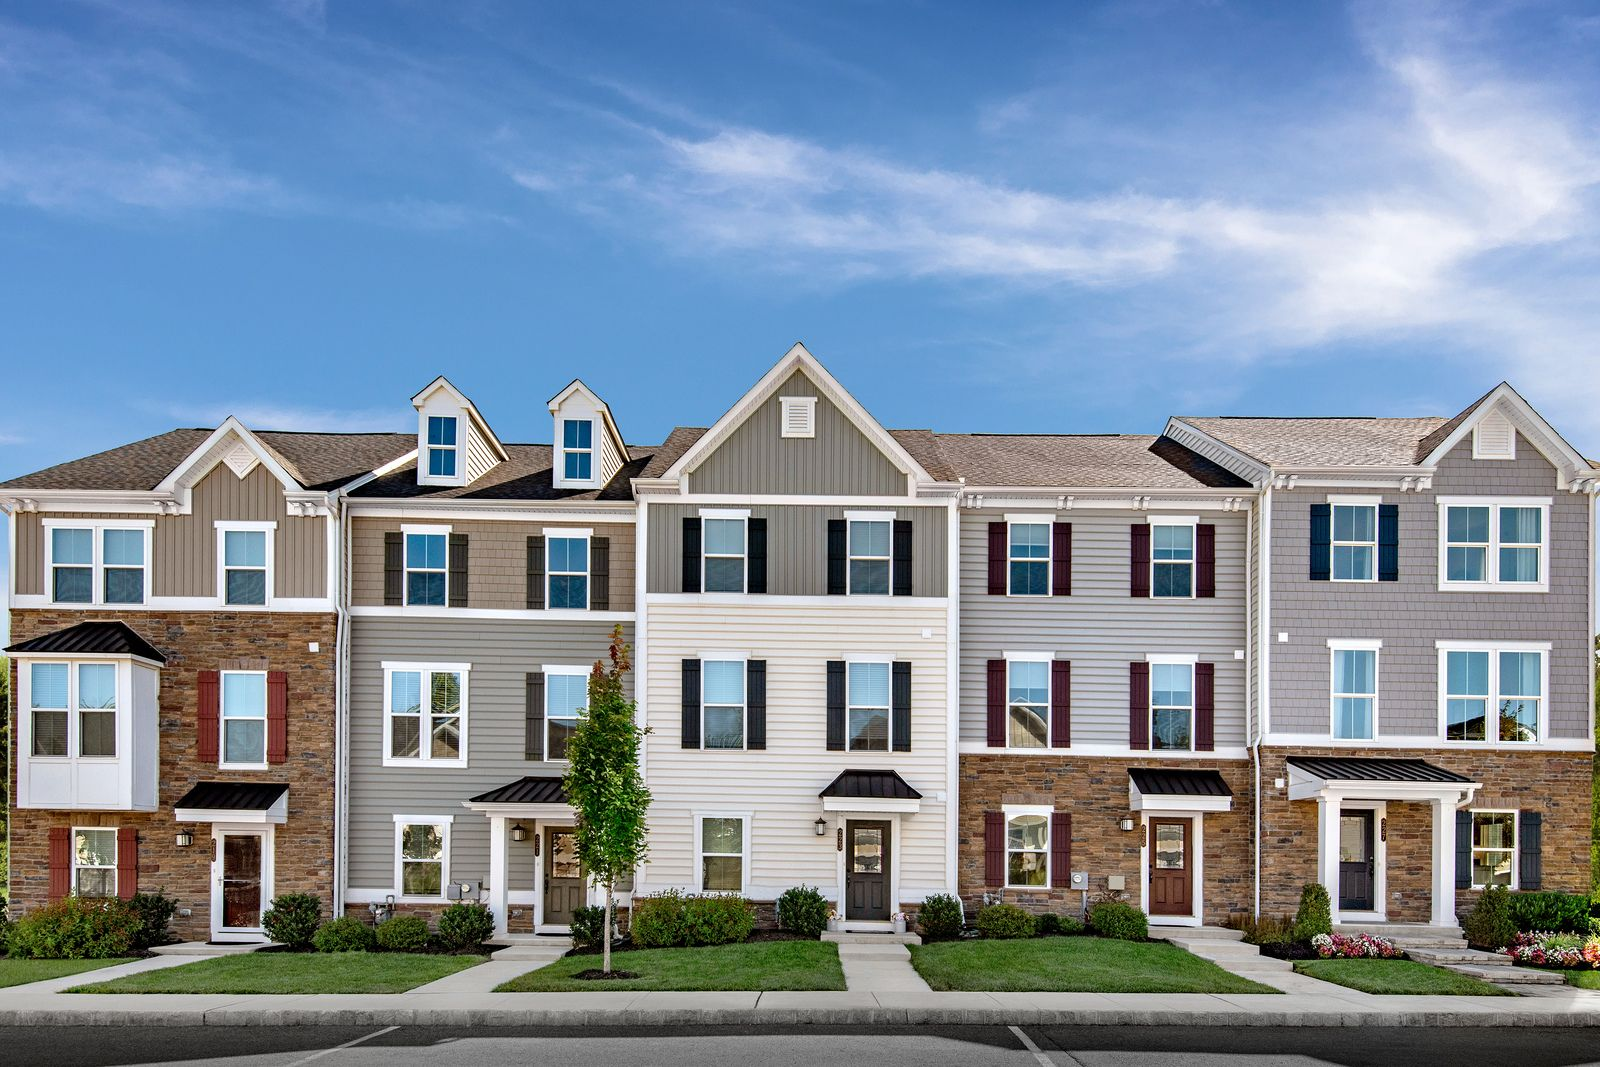 Last chance for Atwater:Lowest-priced townhomes in Great Valley schools in a large community with amenities and convenient access to the PA Turnpike and the SEPTA train.Schedule anappointment today!